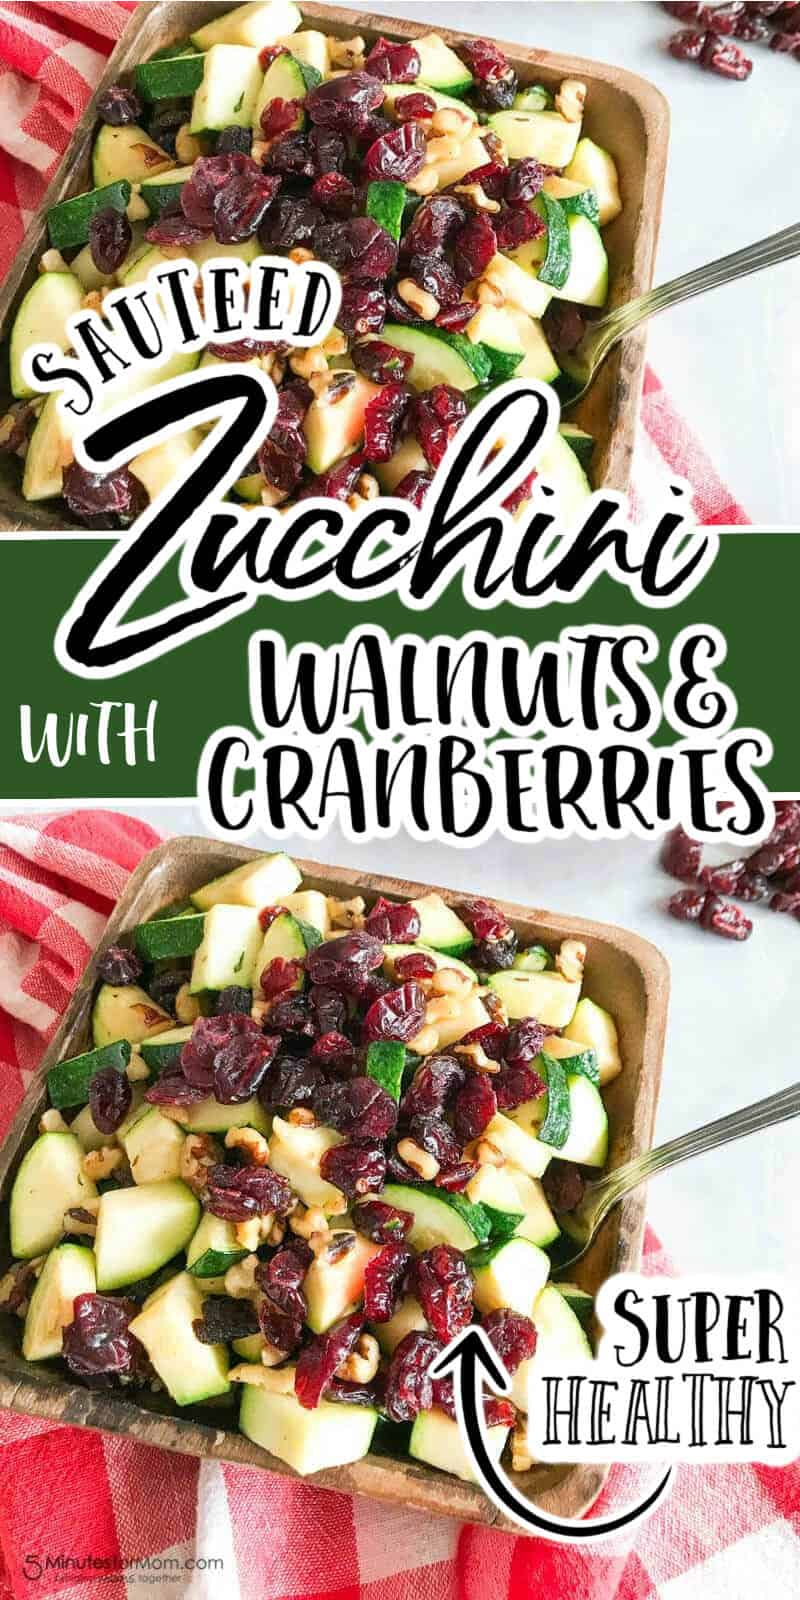 Sauteed Zucchini with Walnuts and Cranberries - Healthy Side Dish Recipe